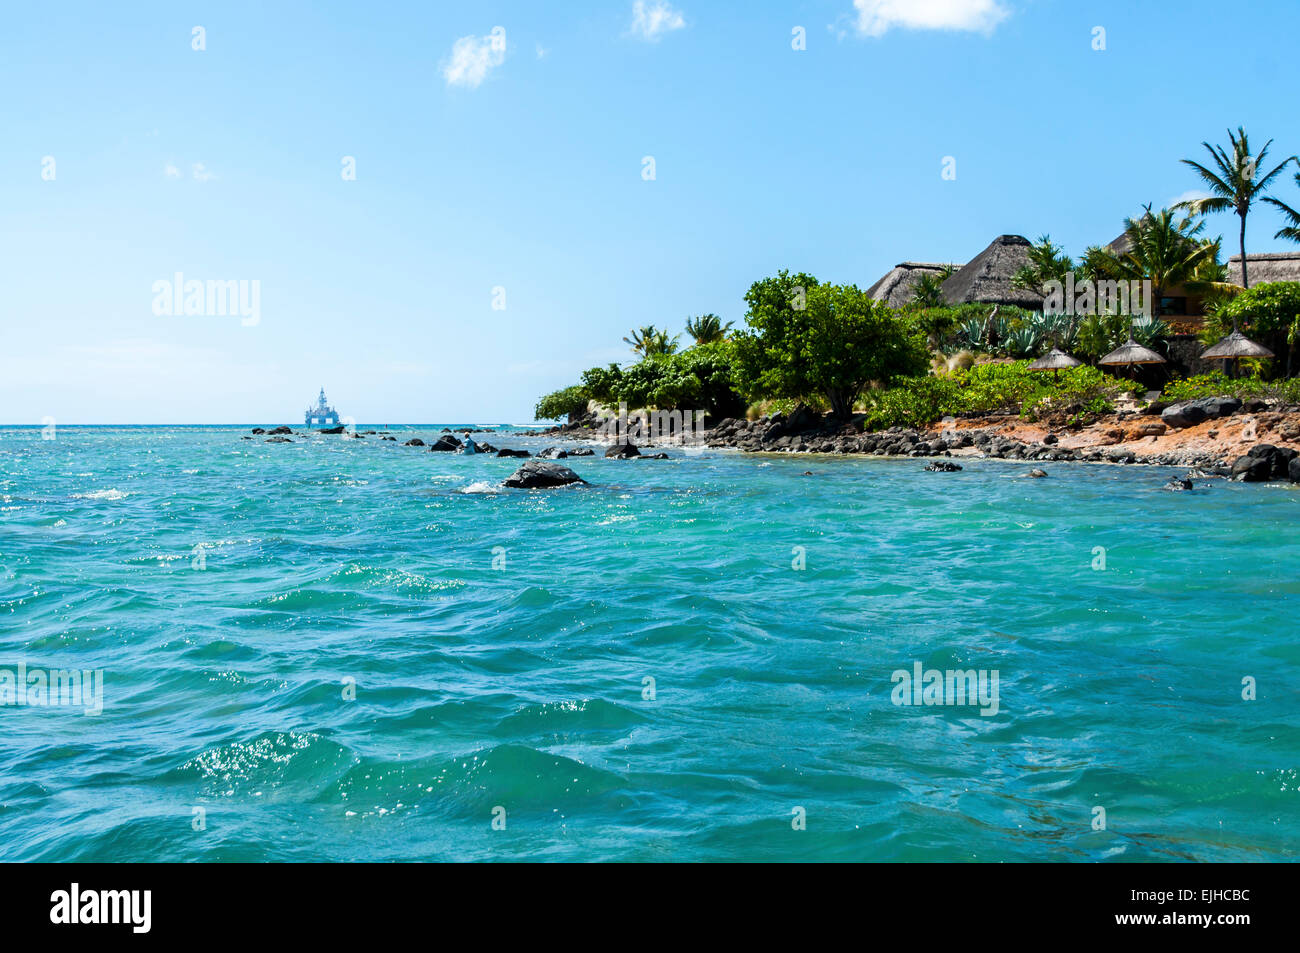 This beautiful country is Mauritius - Stock Image